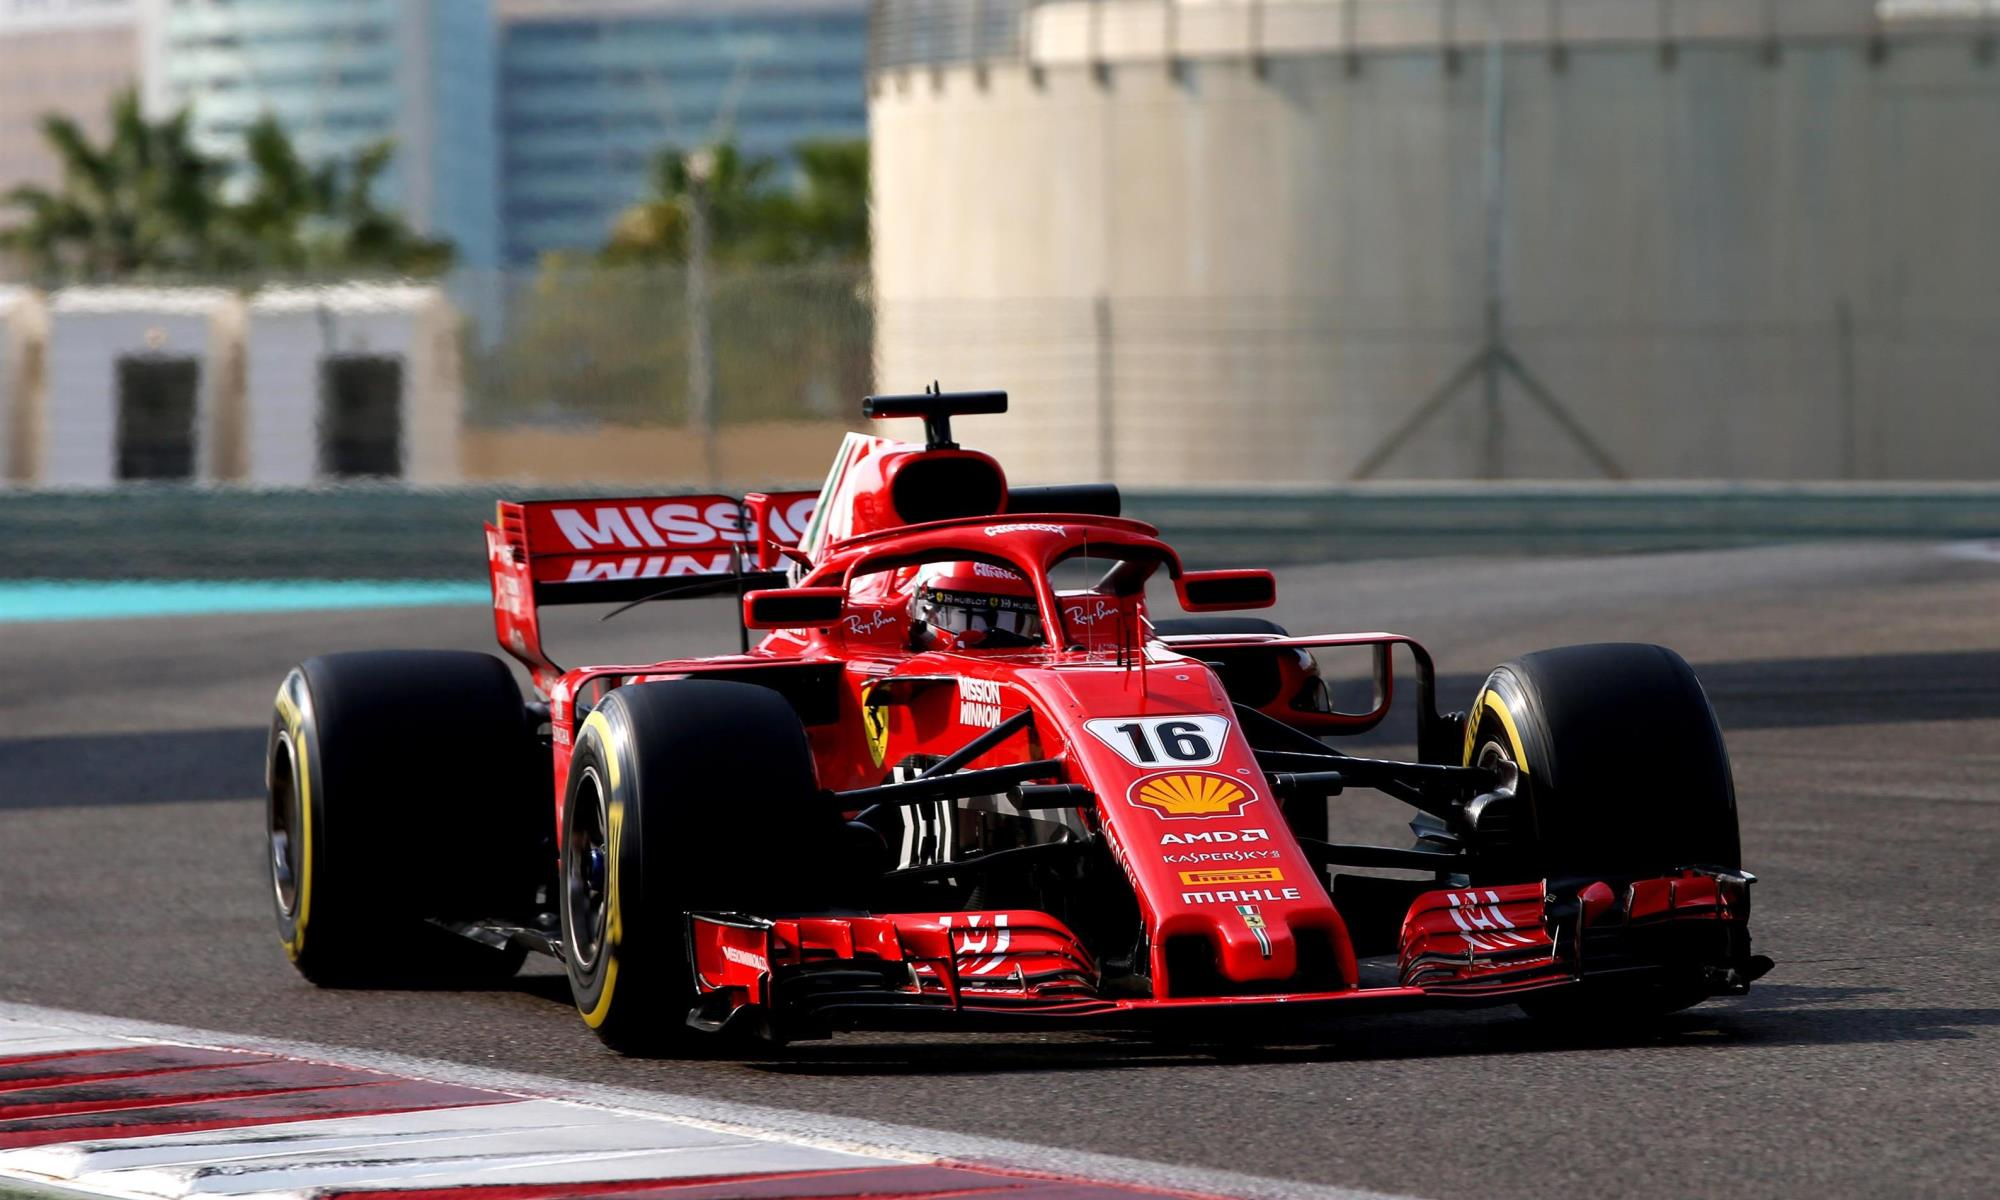 F1: F1 Testing 2019 Is Just A Game, According To Nick Van Der